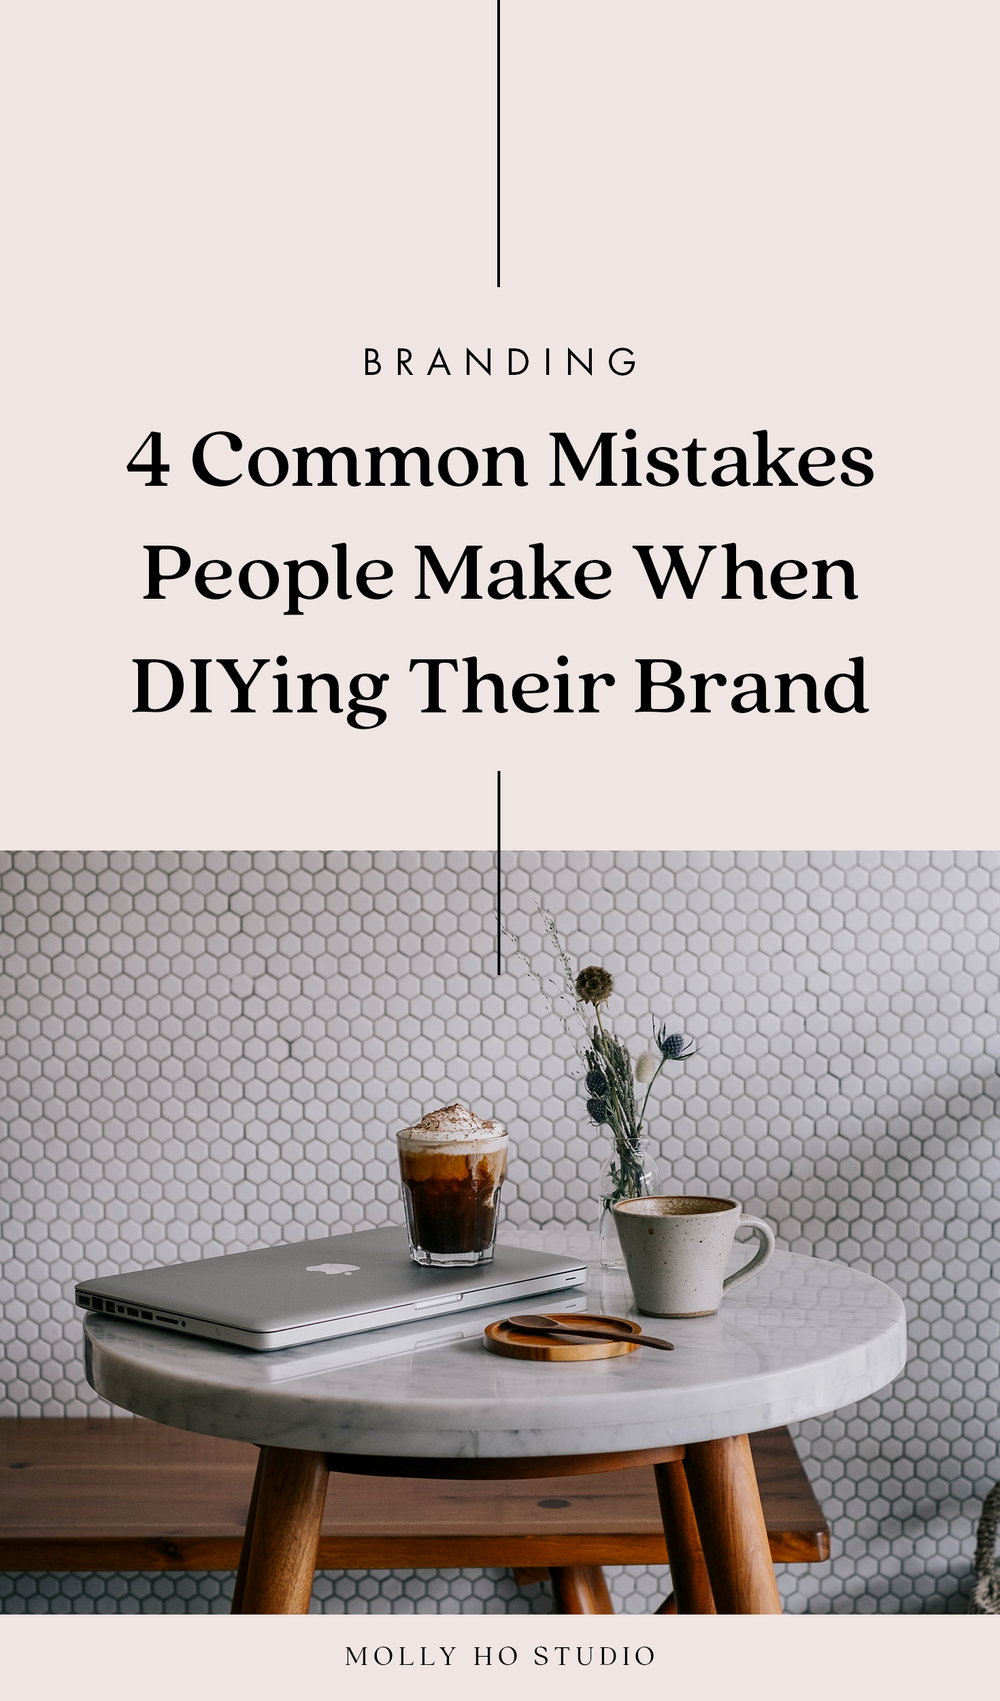 4 Common Mistakes People Make When DIYing Their Brand | How To Find A Brand and Graphic Designer for Your Business | Branding Design Identity | Small Business Advice | Personal Branding for Creative Female Entrepreneurs | Digital Marketing and Social Media | Finding Your Ideal Client Avatar and Target Market | Creative Entrepreneurship | Best Practices for Branding and Business | Molly Ho Studio